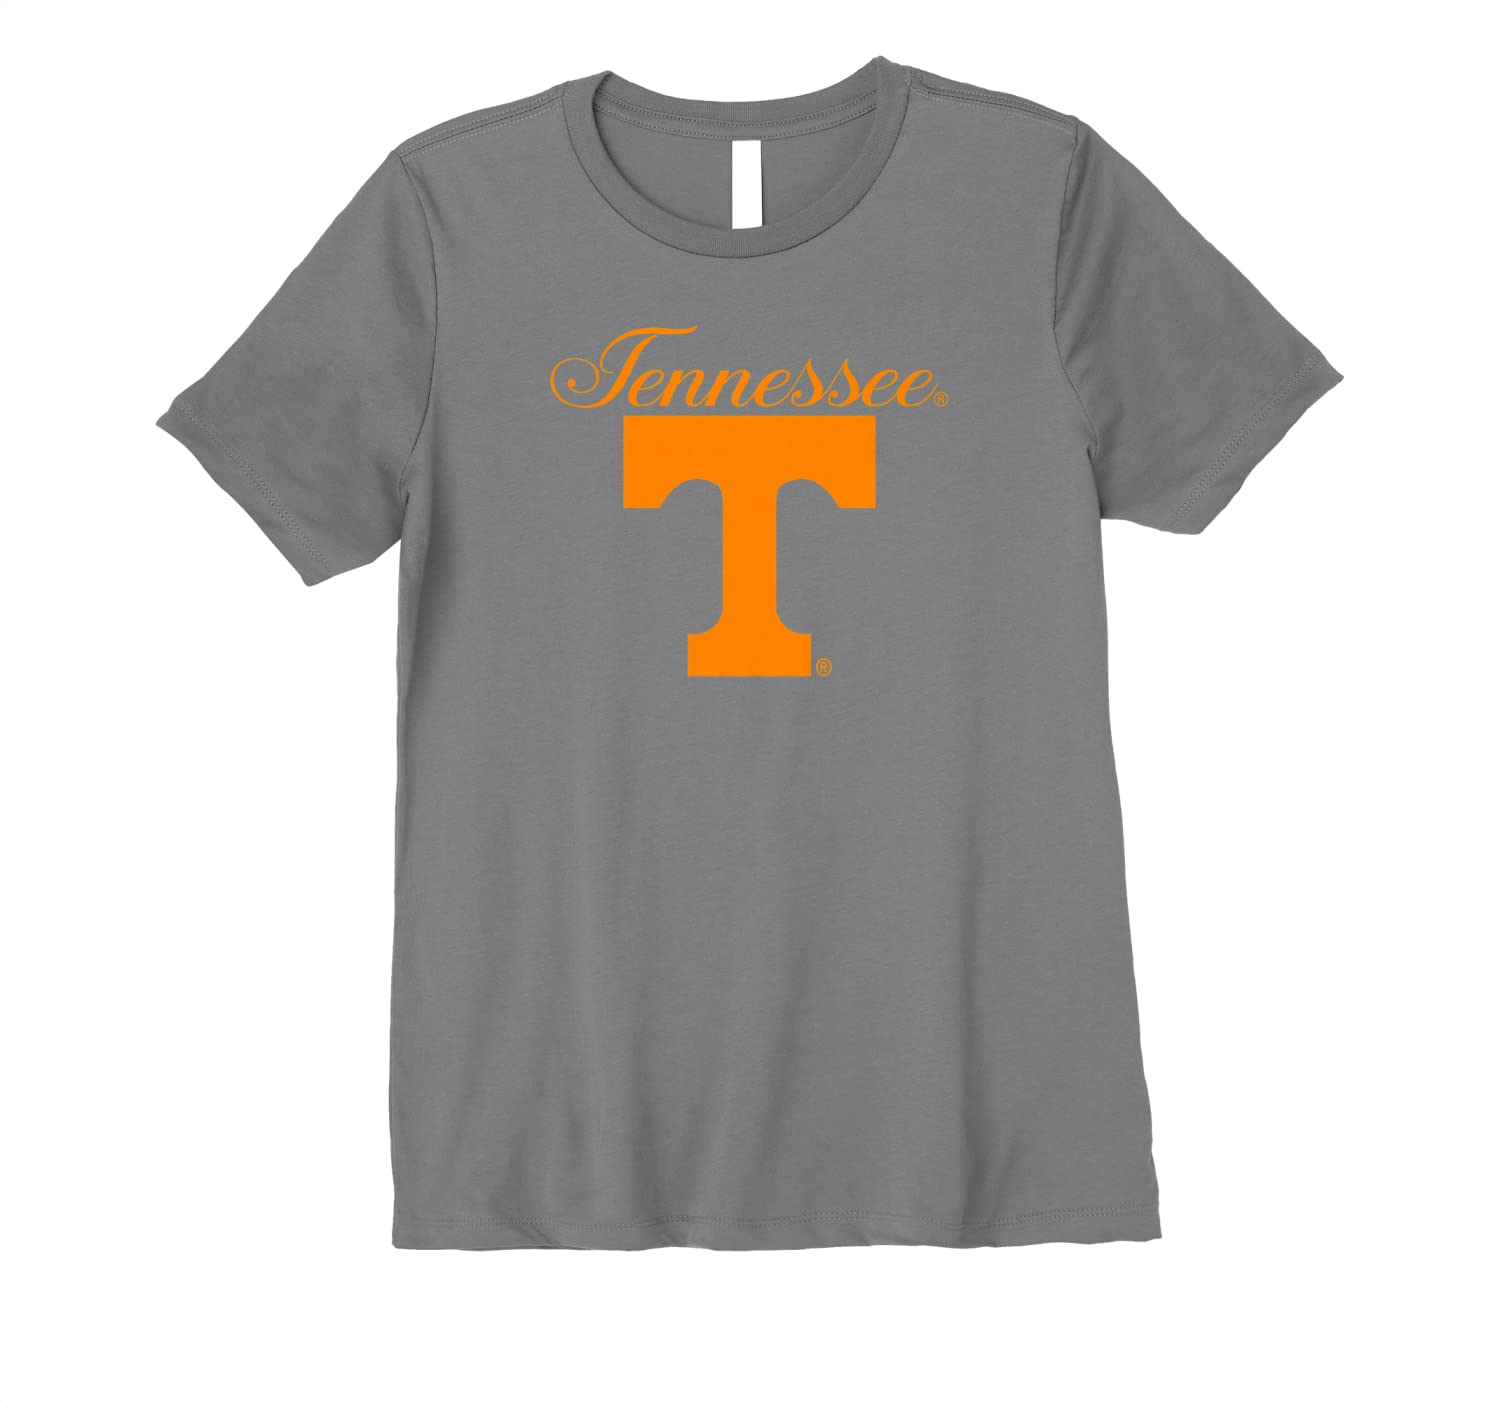 Tennessee Volunteers Vols UT Womens NCAA T-Shirt 67L-TN